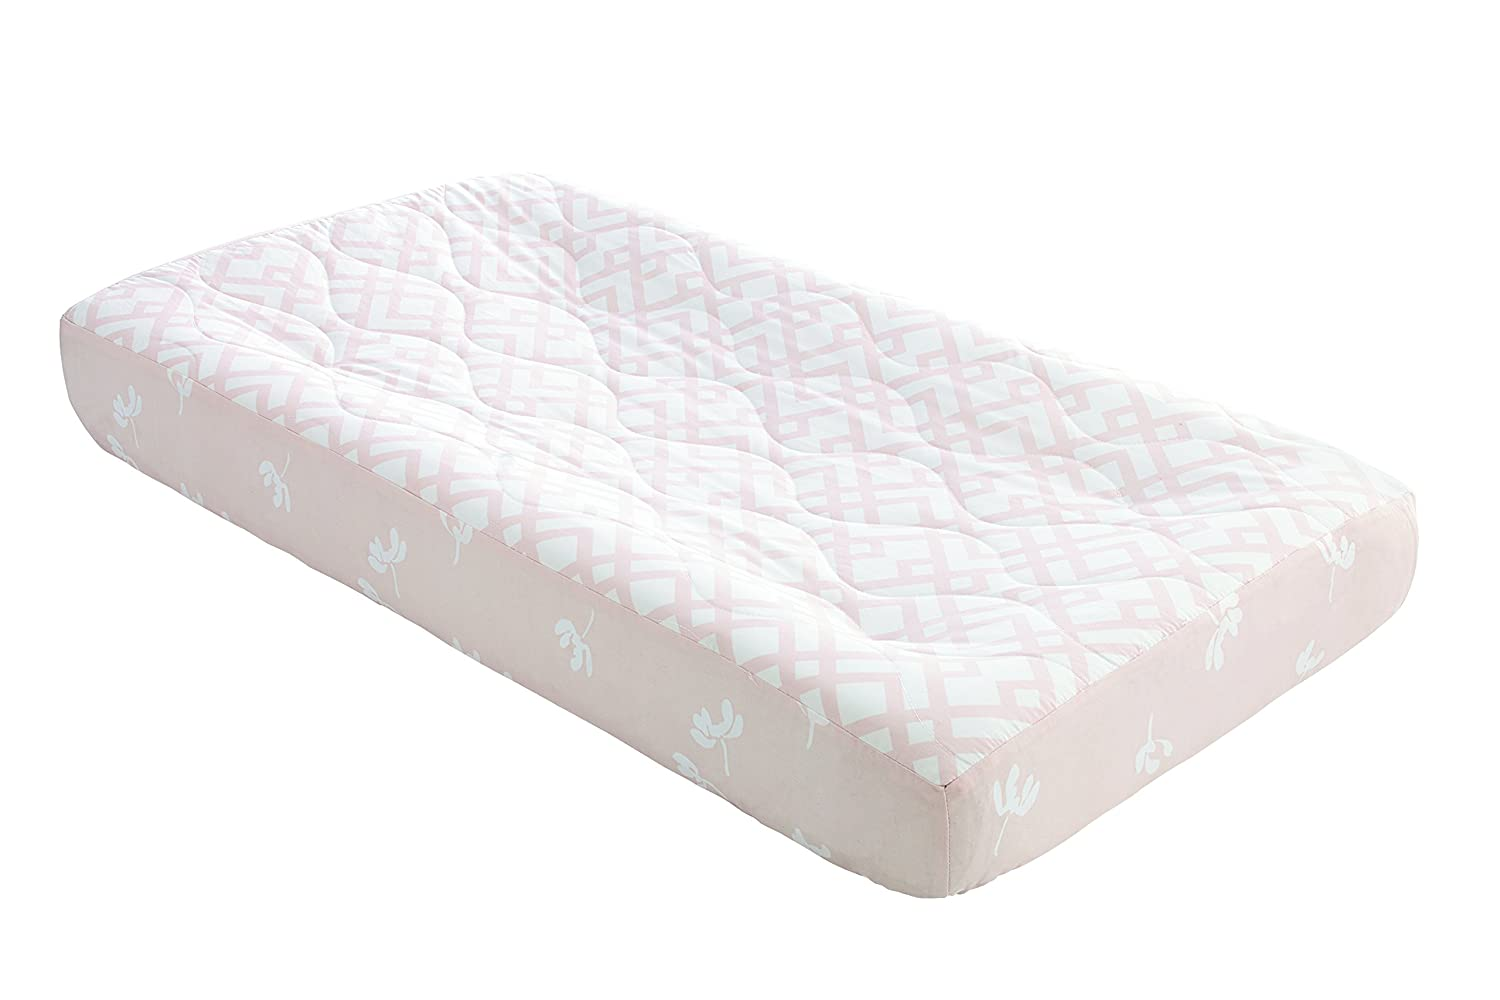 Ivanka Trump Wildflower Collection: Contoured Diaper Pad Cover for Diaper Changer - Trellis Pattern in White and Pink